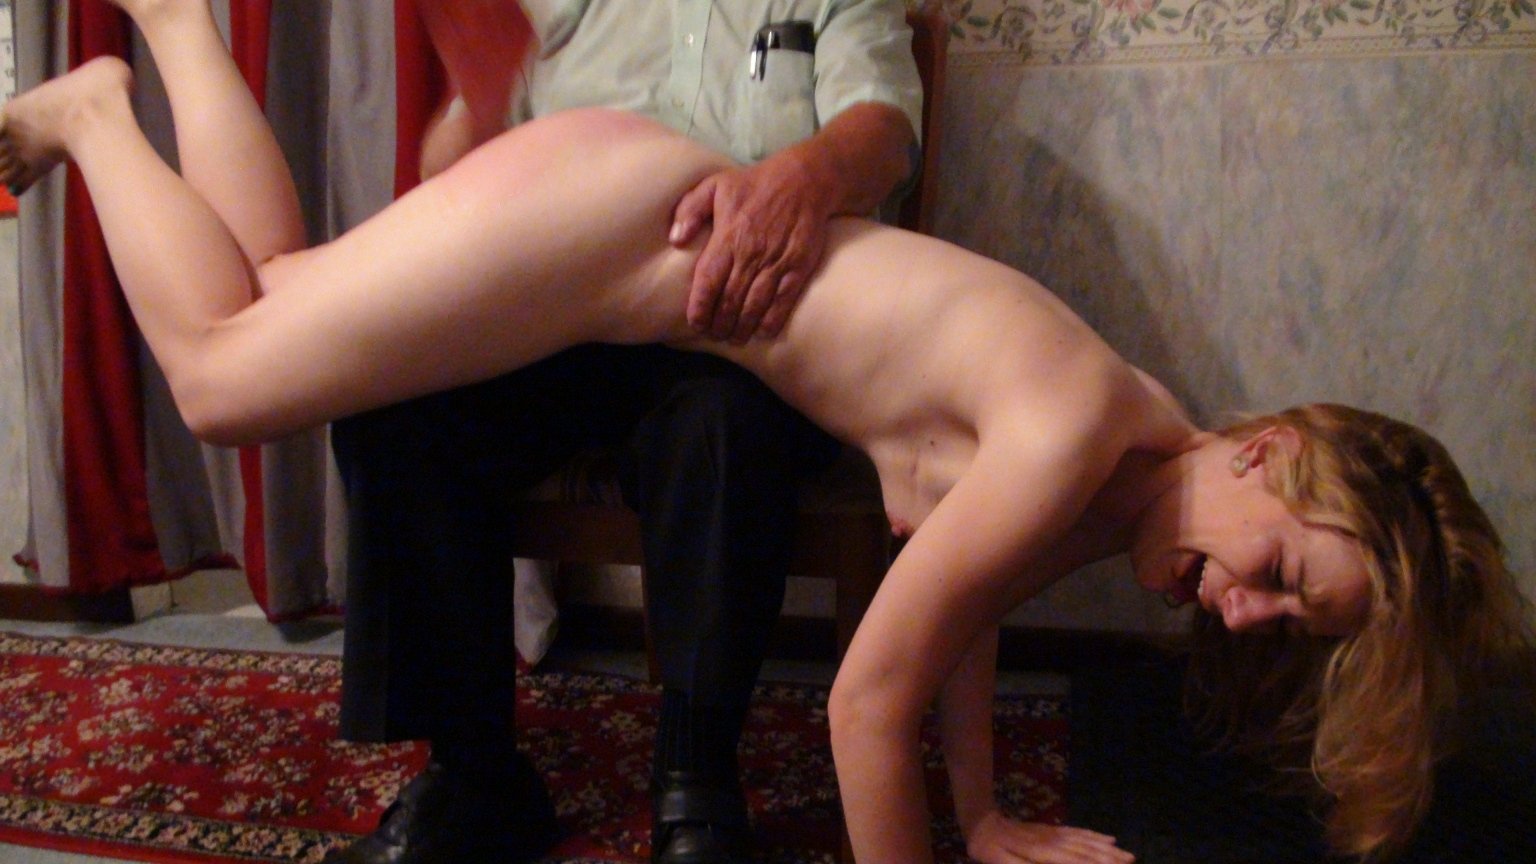 Good hard spankings